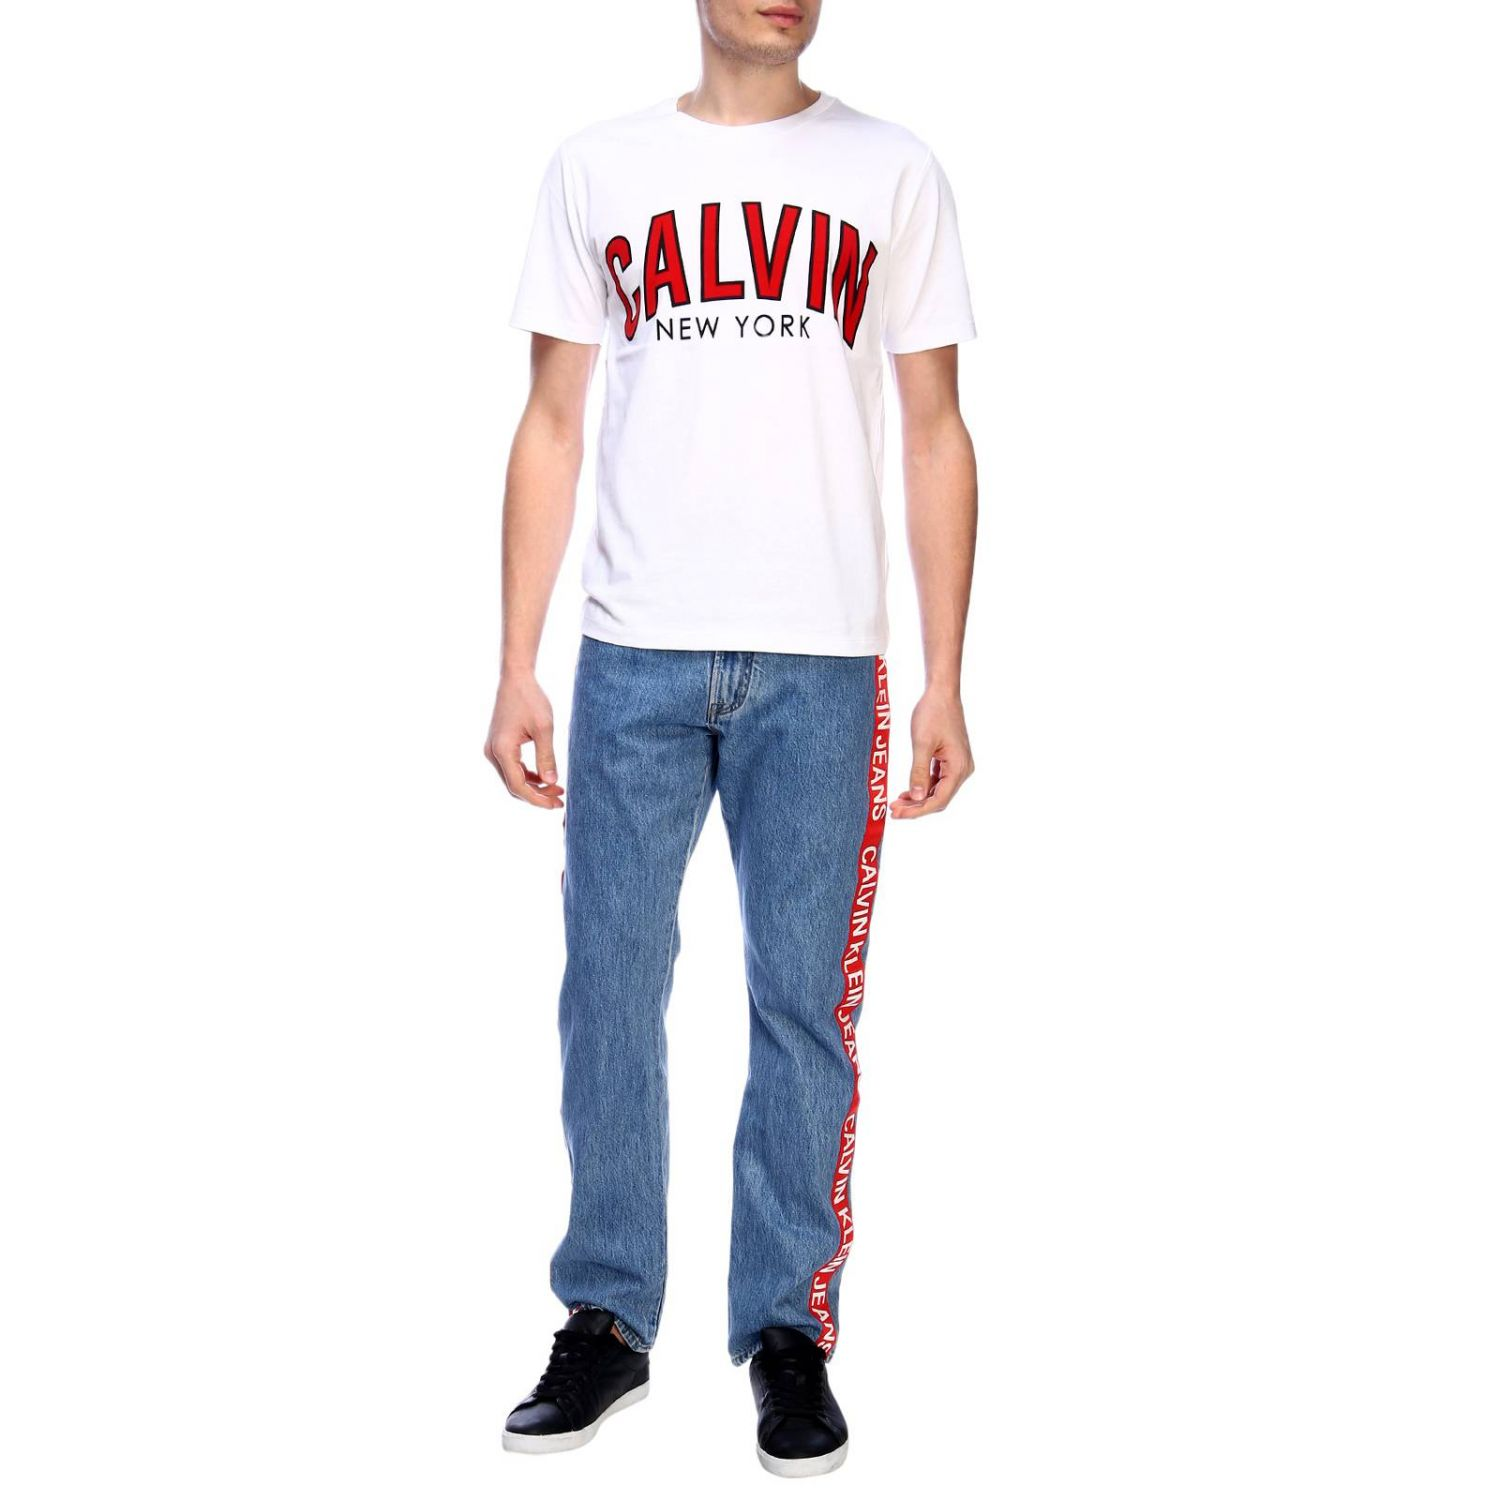 T-shirt men Calvin Klein Jeans white 4